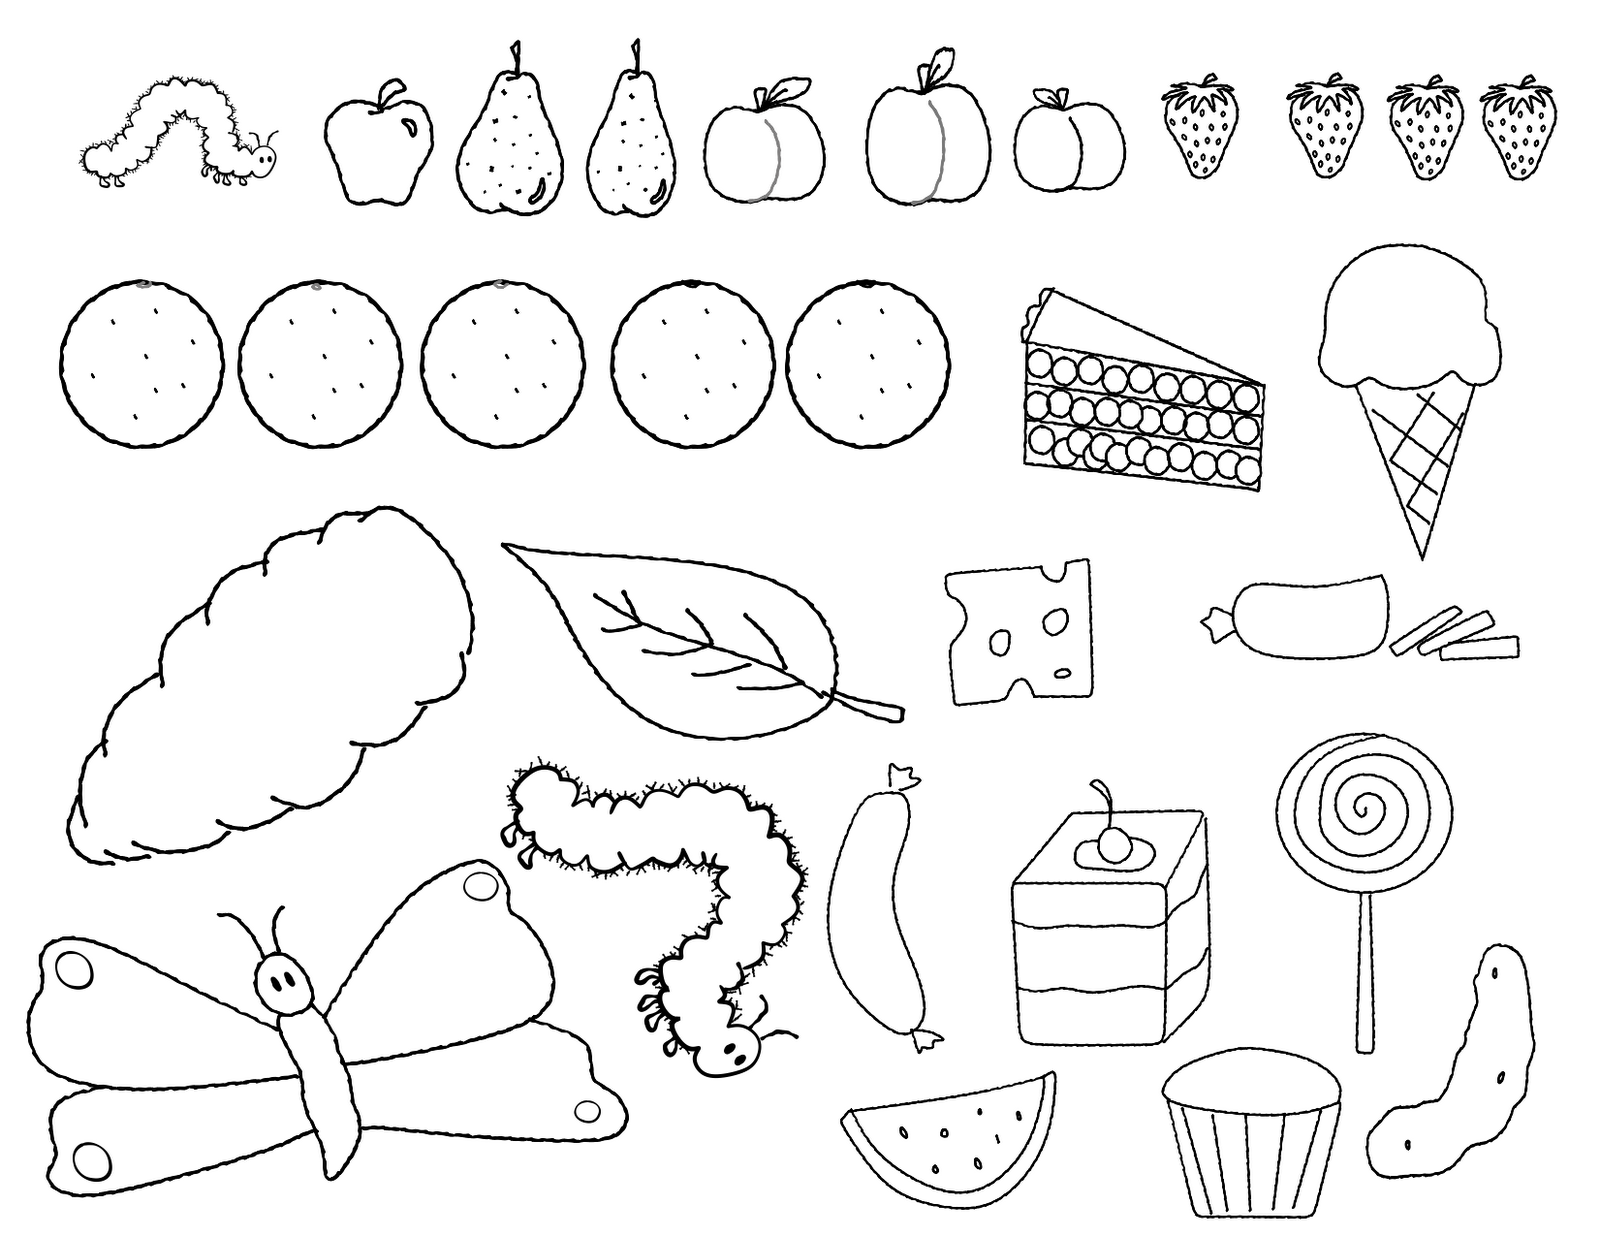 Very Hungry Caterpillar Coloring Pages | Printable Coloring ...